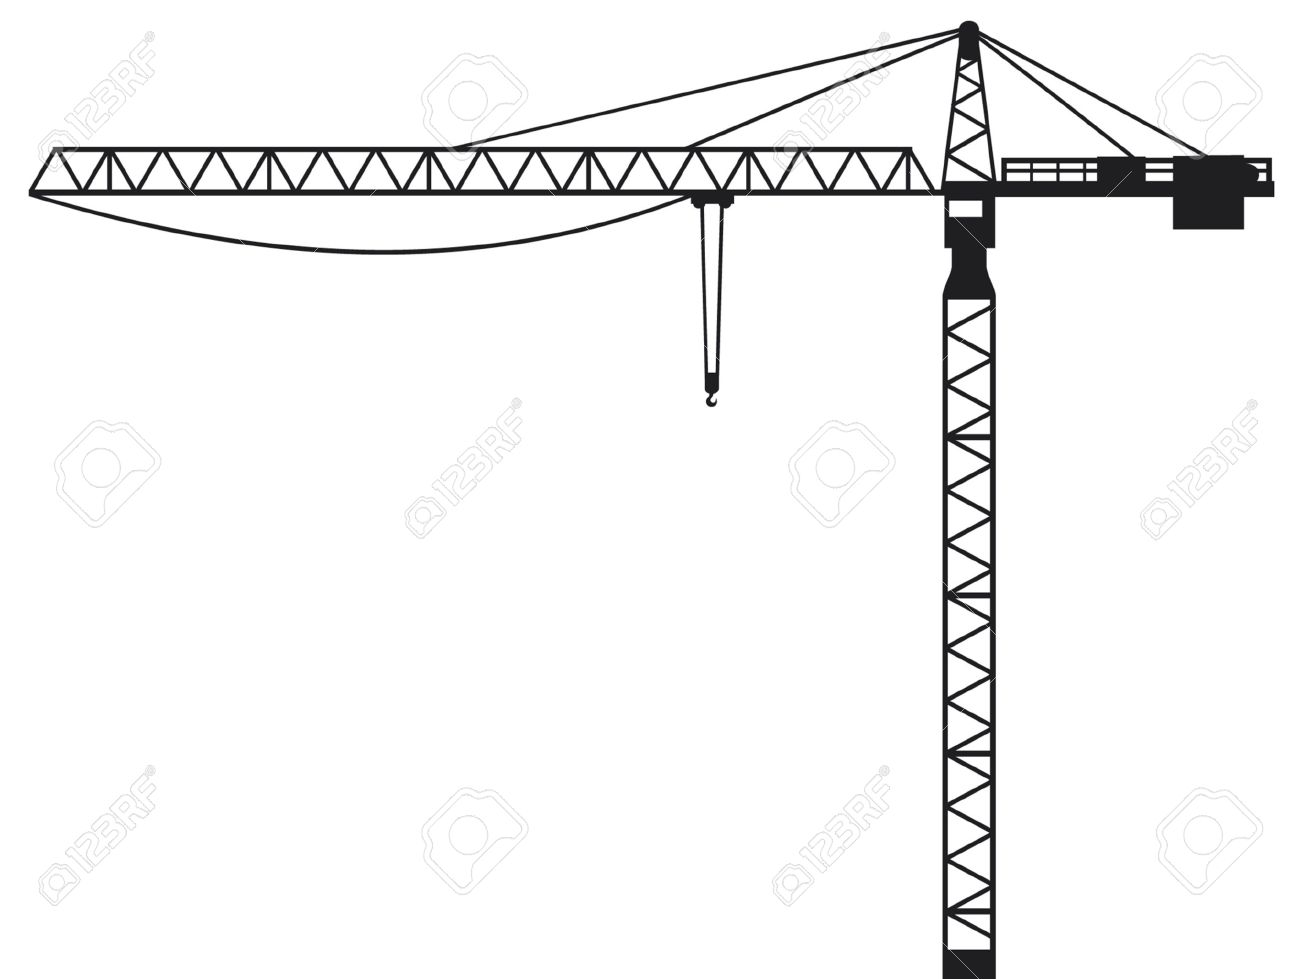 Crane Building Crane, Tower Crane Royalty Free Cliparts, Vectors.